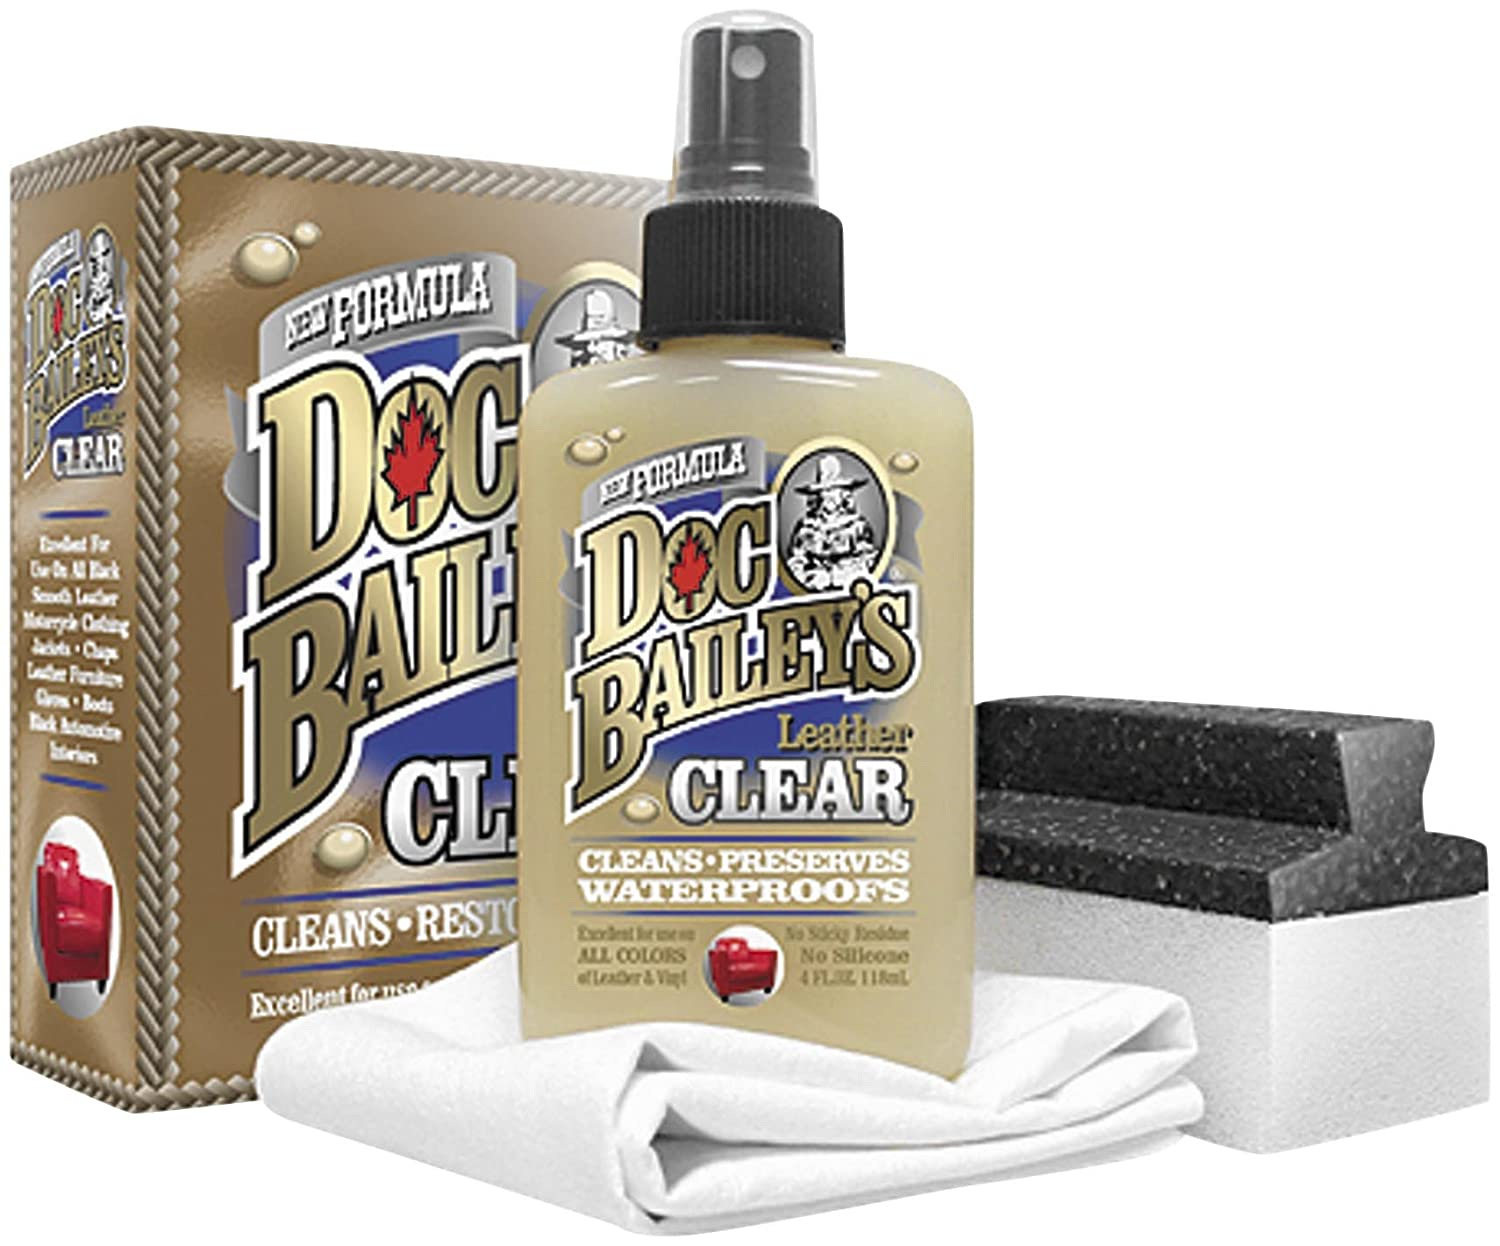 Doc Baileys Leather Detail Kit Black - Restore Your Clear Leather and Vinyl With This Leather Cleaning Product - Condition, Clean, and Waterproof ...